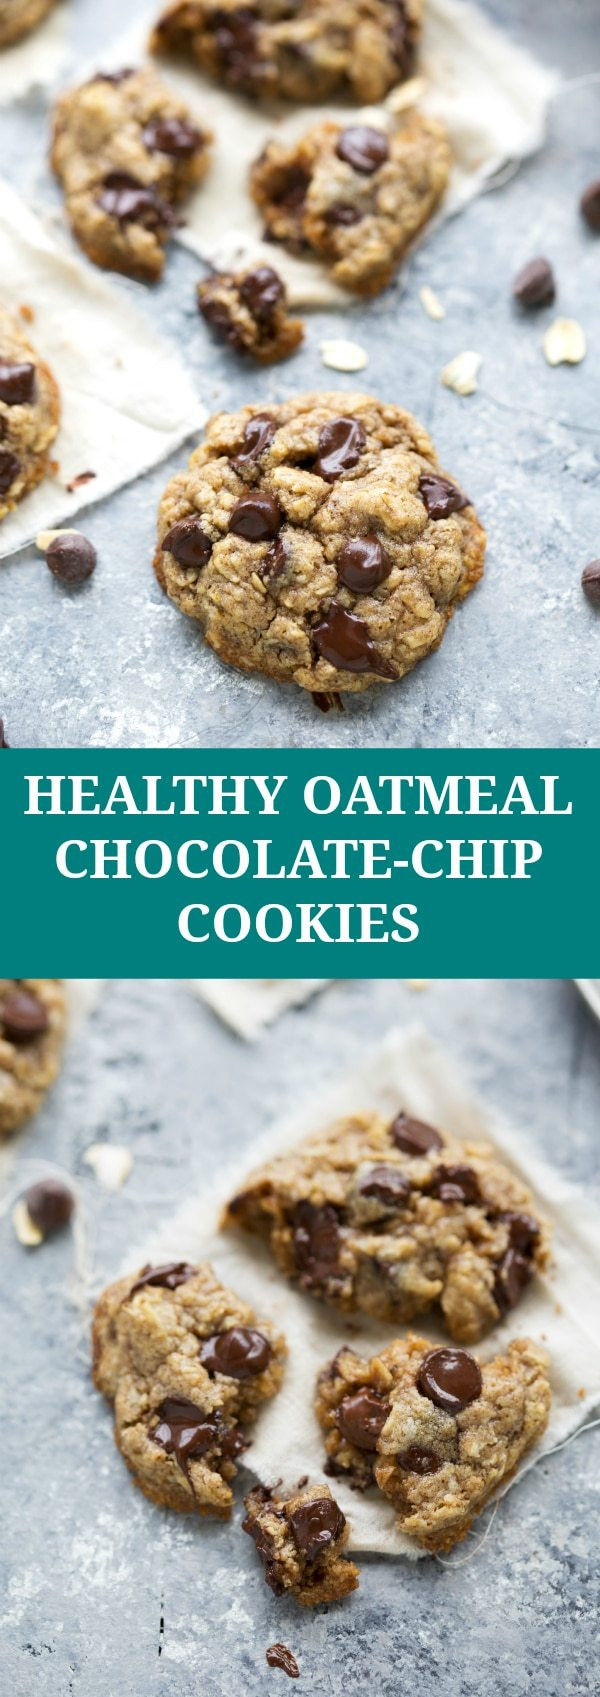 Healthy Chocolate Oatmeal Cookies  The BEST healthy oatmeal chocolate chip cookies Chelsea